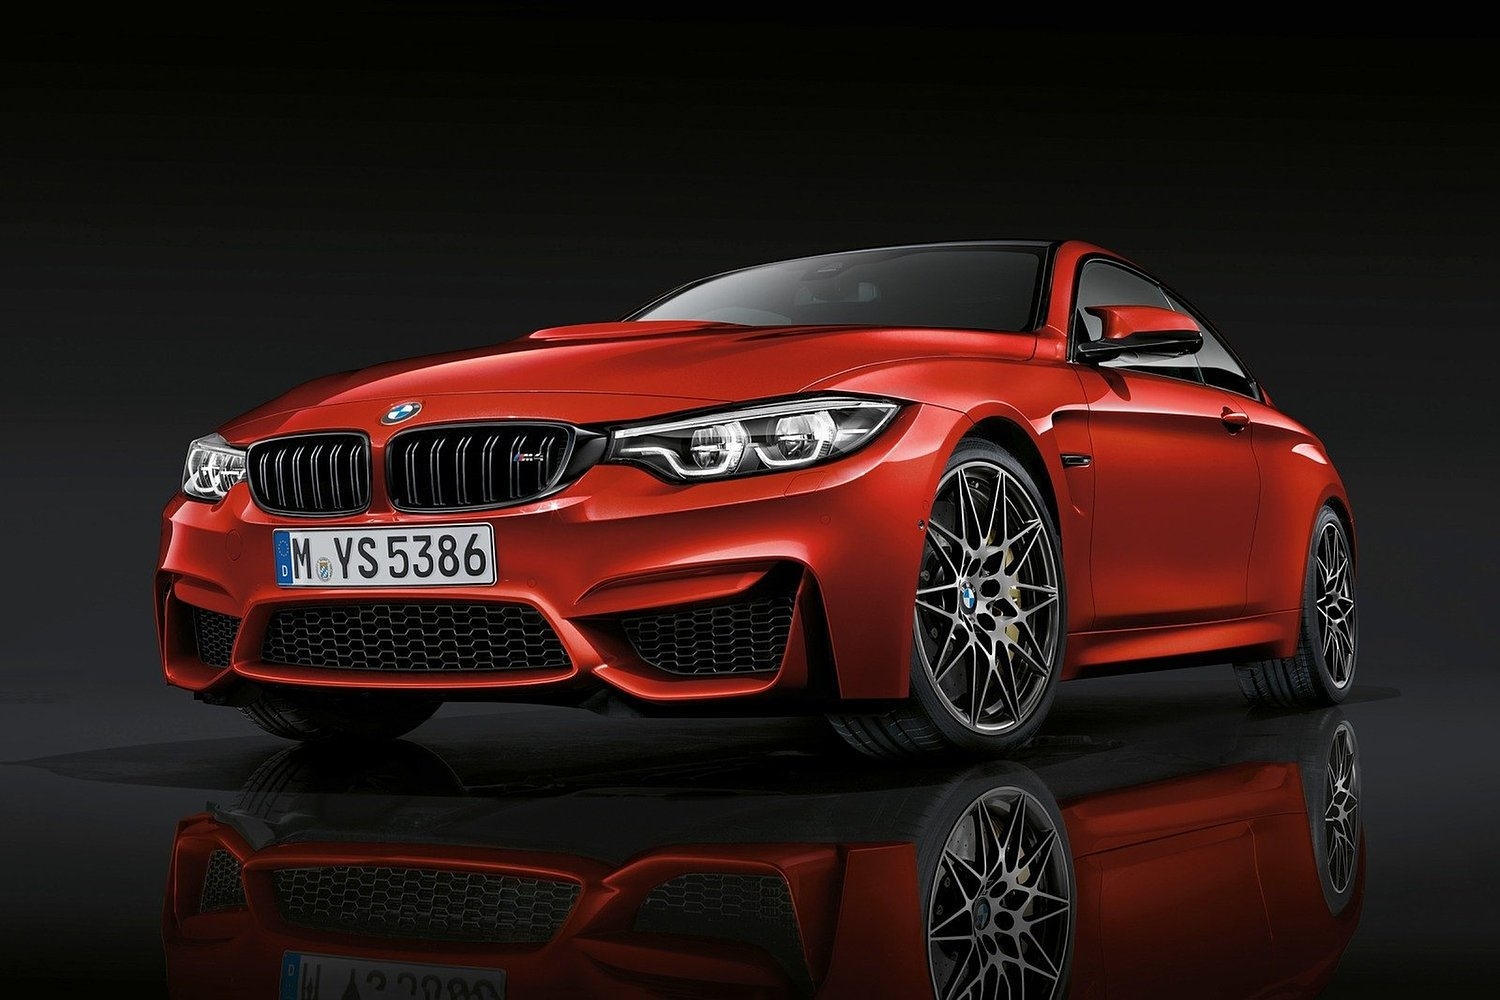 2018 BMW M4 Coupe Exterior. Competition Package Shown.